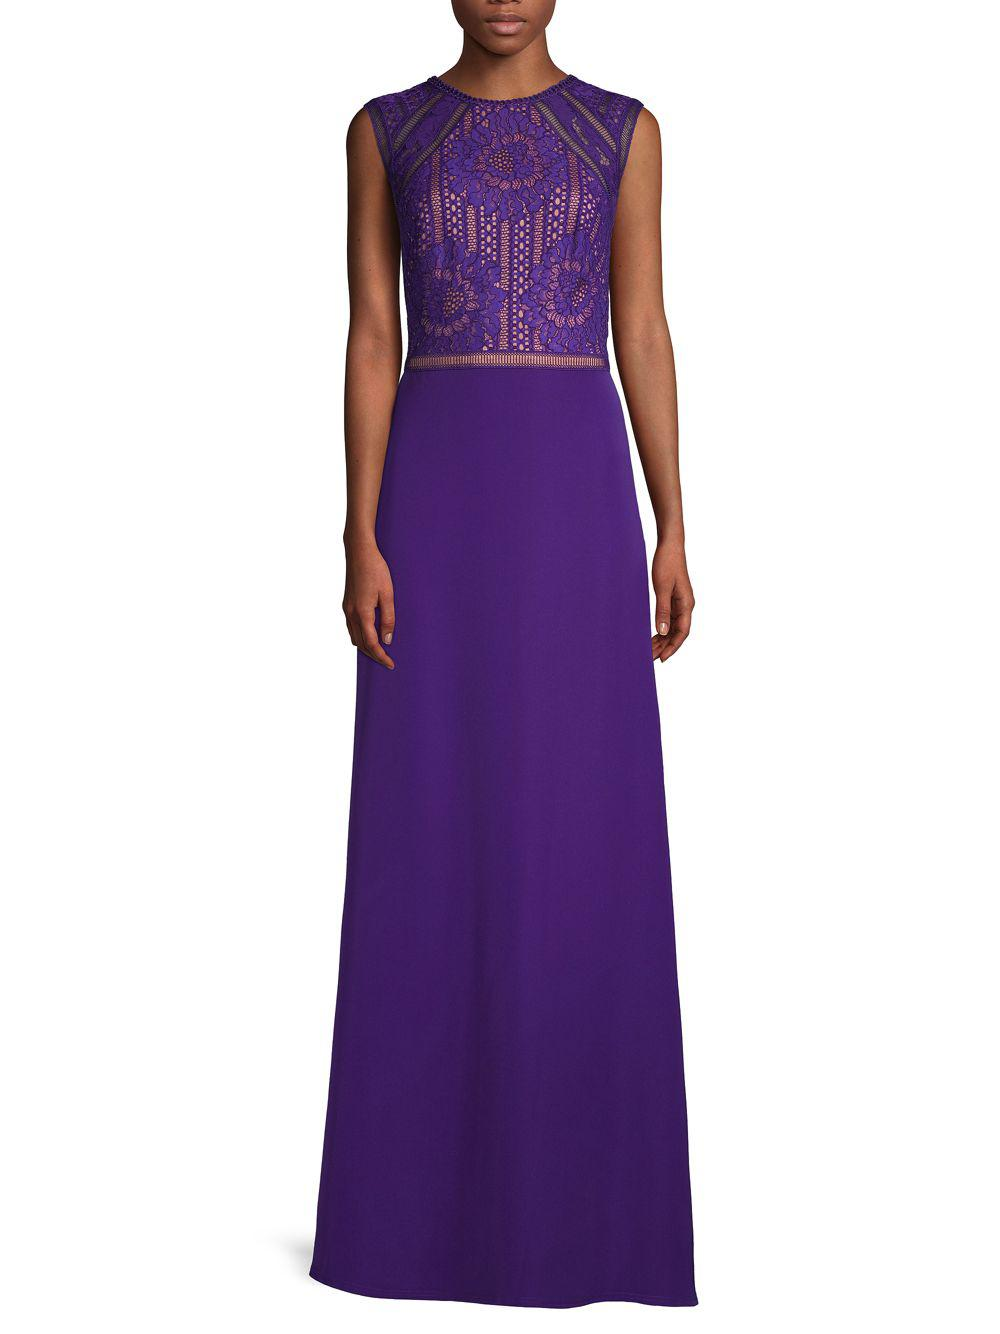 Lyst - Tadashi Shoji Embroidered Lace Sleeveless Gown in Purple ...